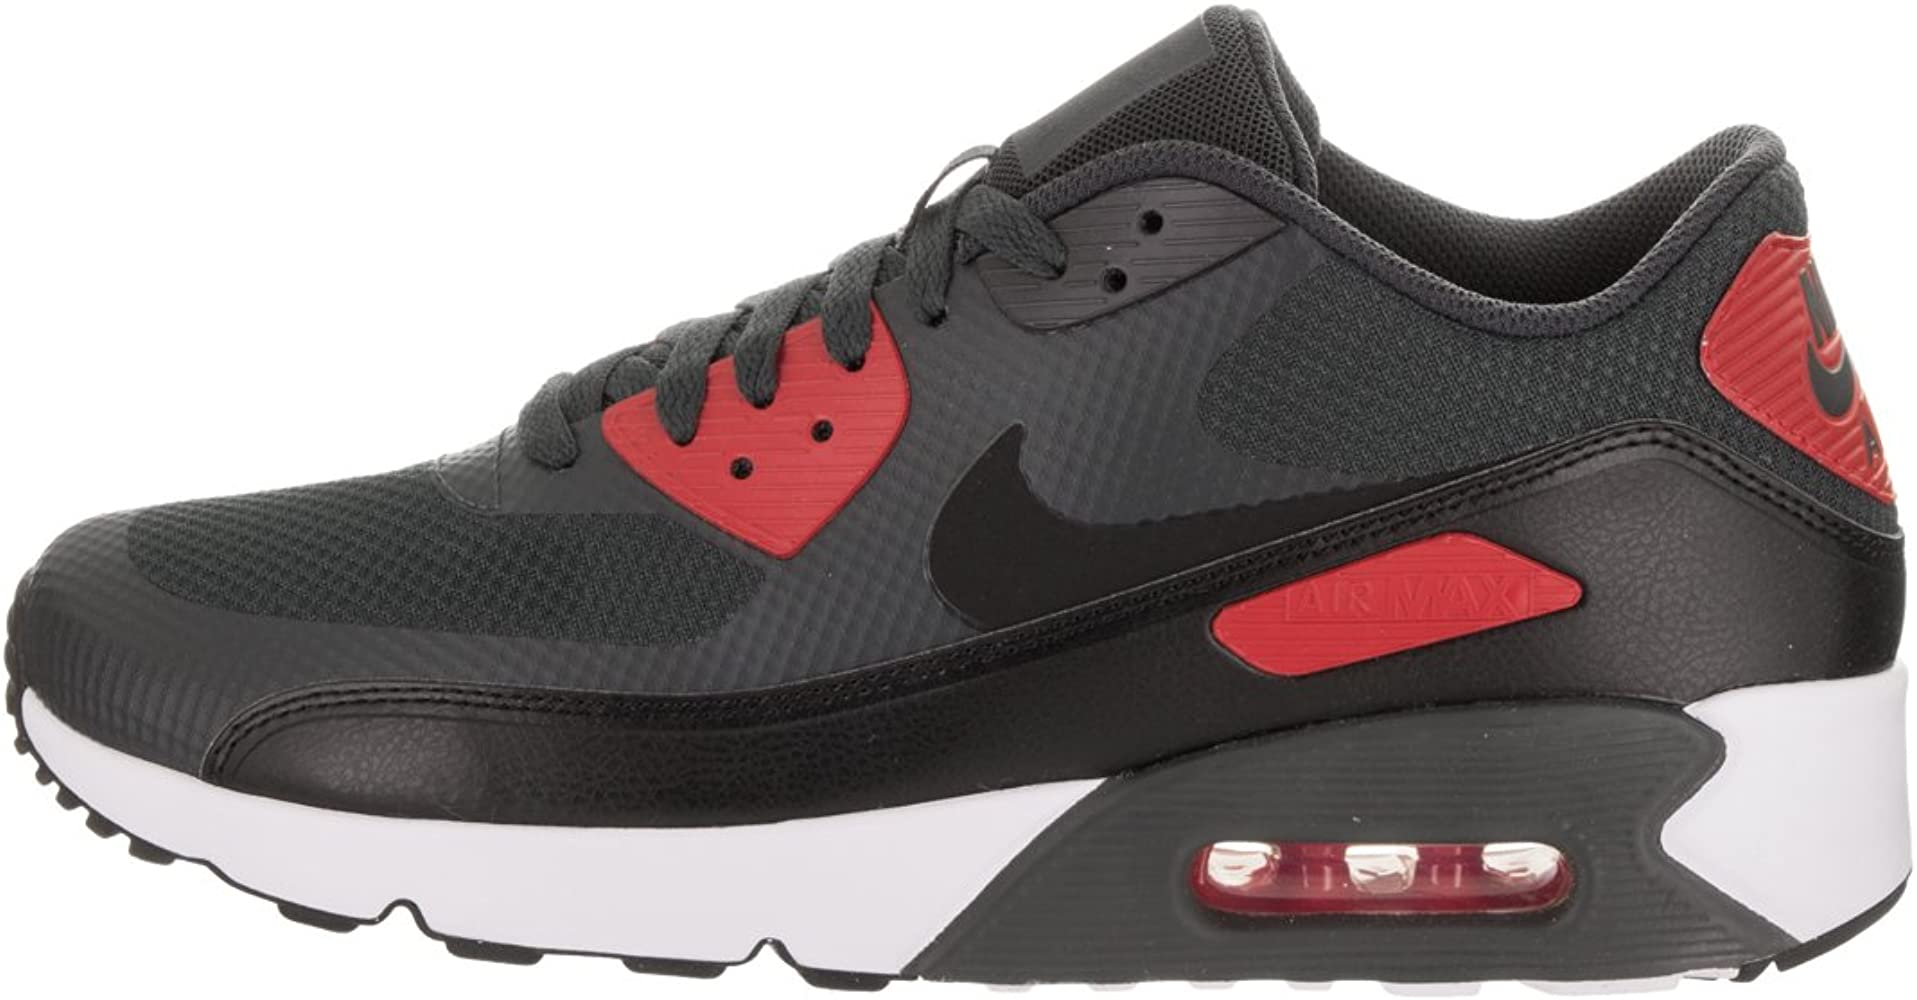 Official Look At The Nike Air Max 90 Essential Anthracite